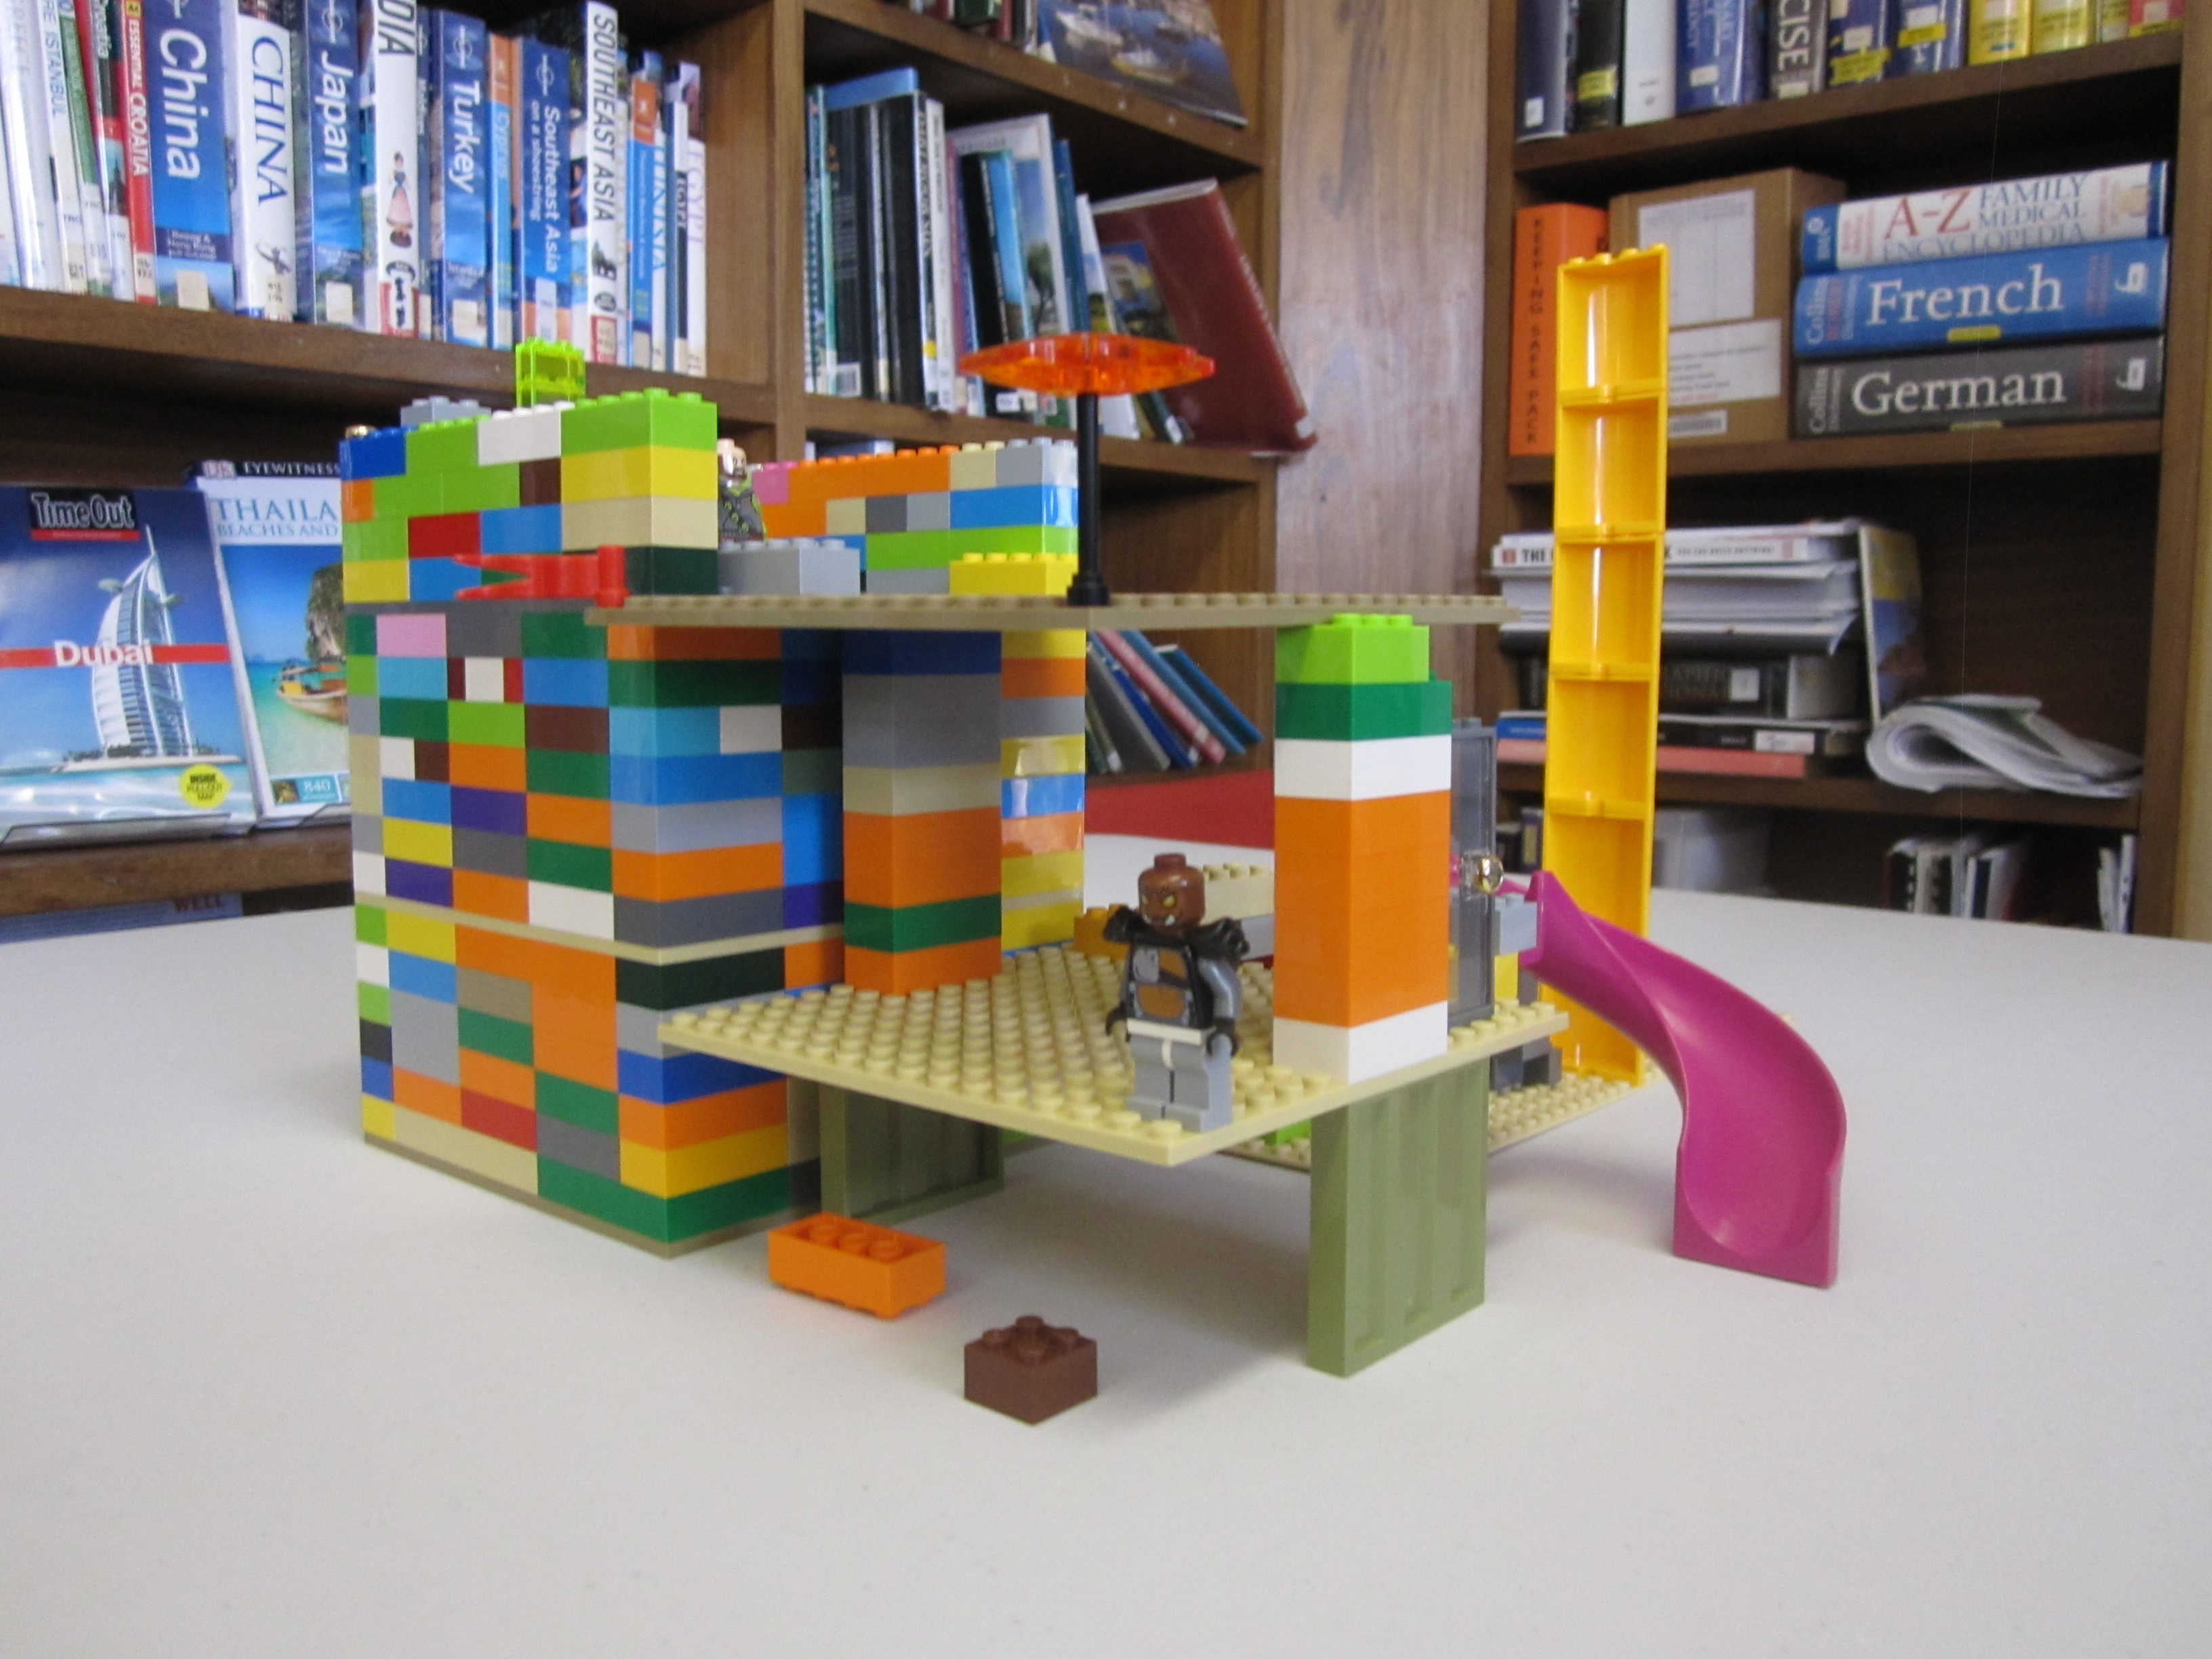 LEGO Table available to use all day in the library. A wonderful way to create and build some great Lego creations